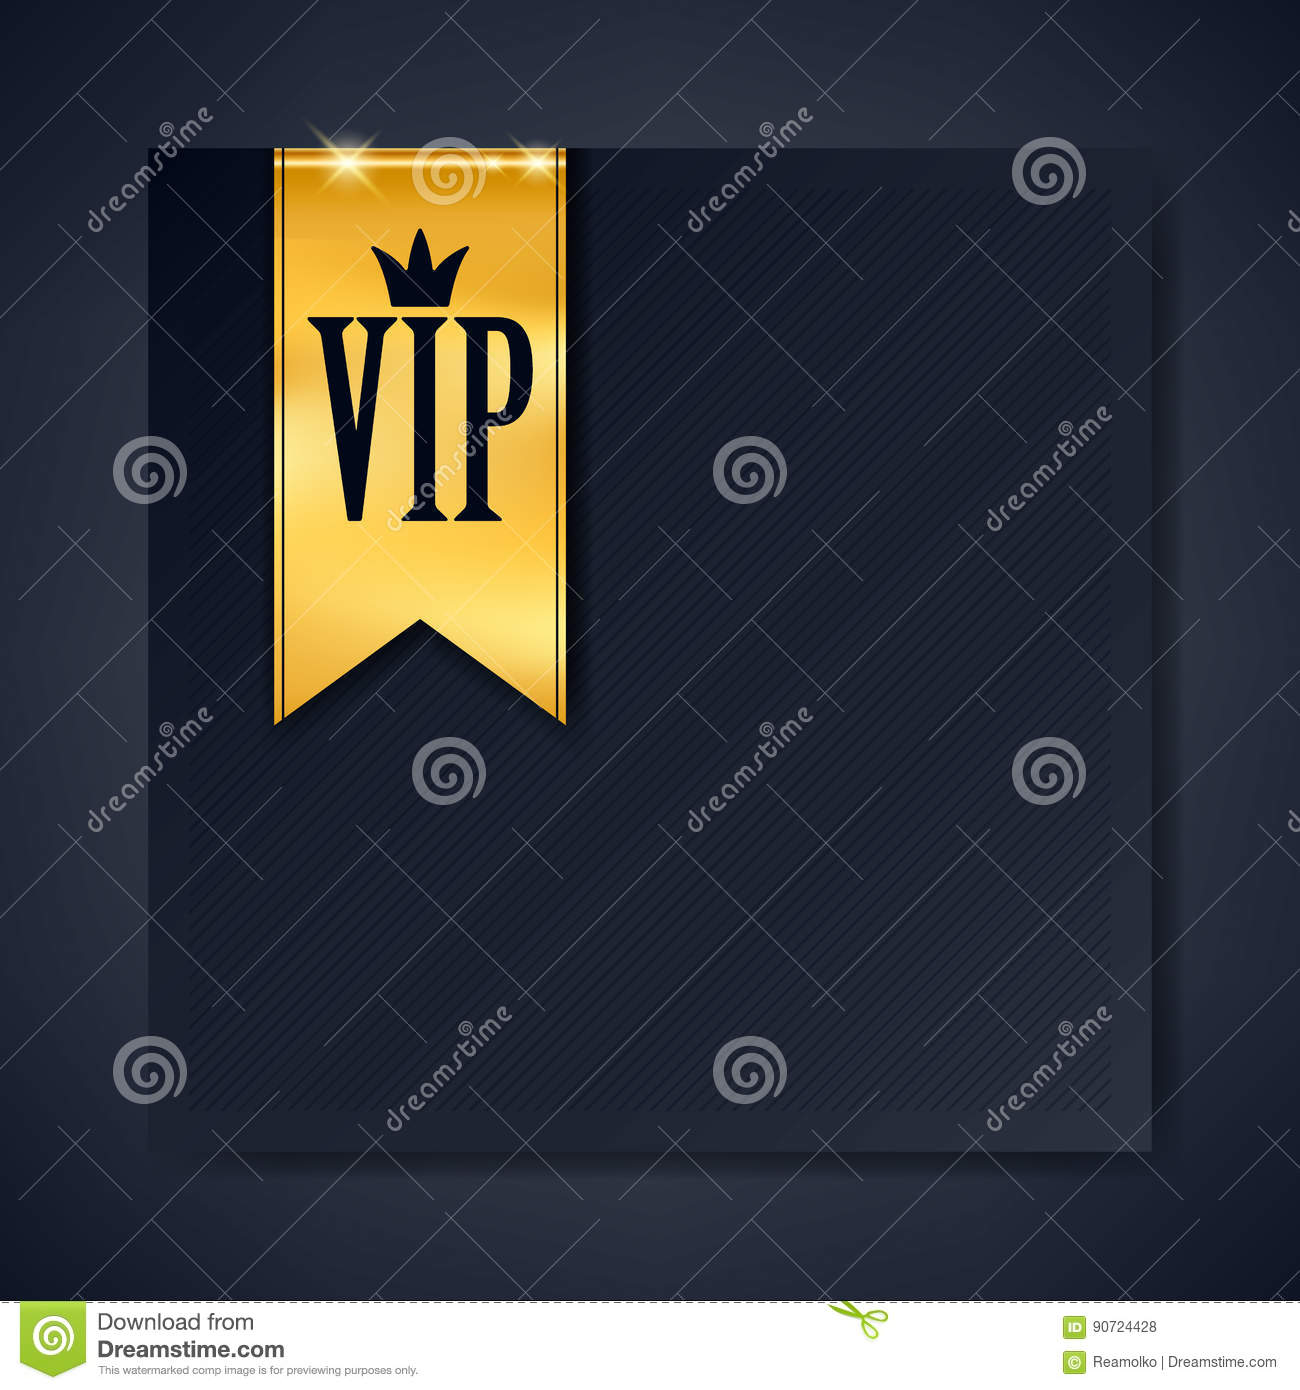 Vip club party premium invitation card poster flyer stock vector vip club party premium invitation card poster flyer black and golden design template with copy space golden ribbons decorative vector background spiritdancerdesigns Image collections